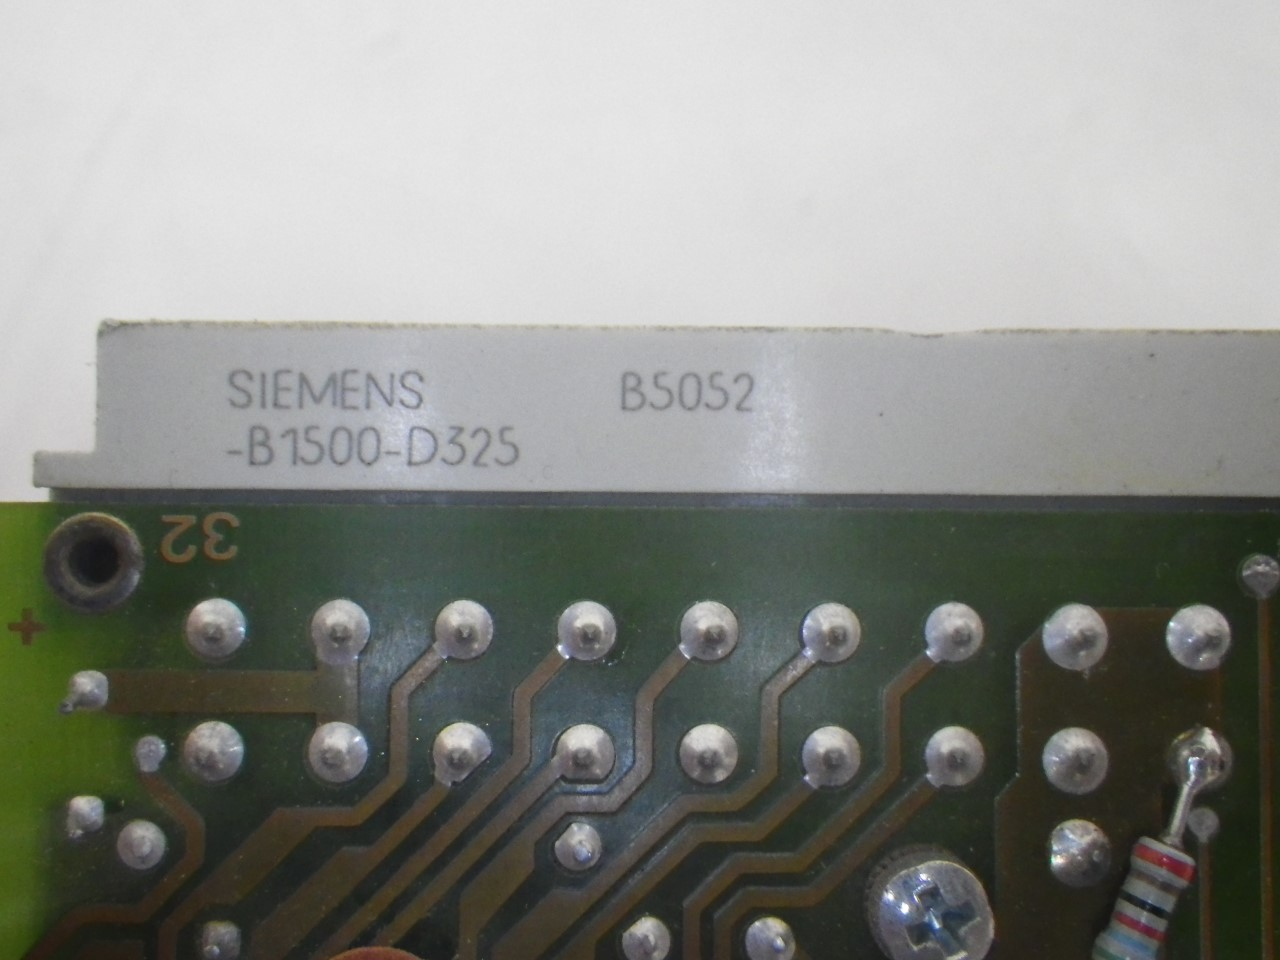 IMGP8387D 550 RS 19 Berger Lahr Stepper Drive + Siemens B1500-D325 Board(Used Tested) (22)